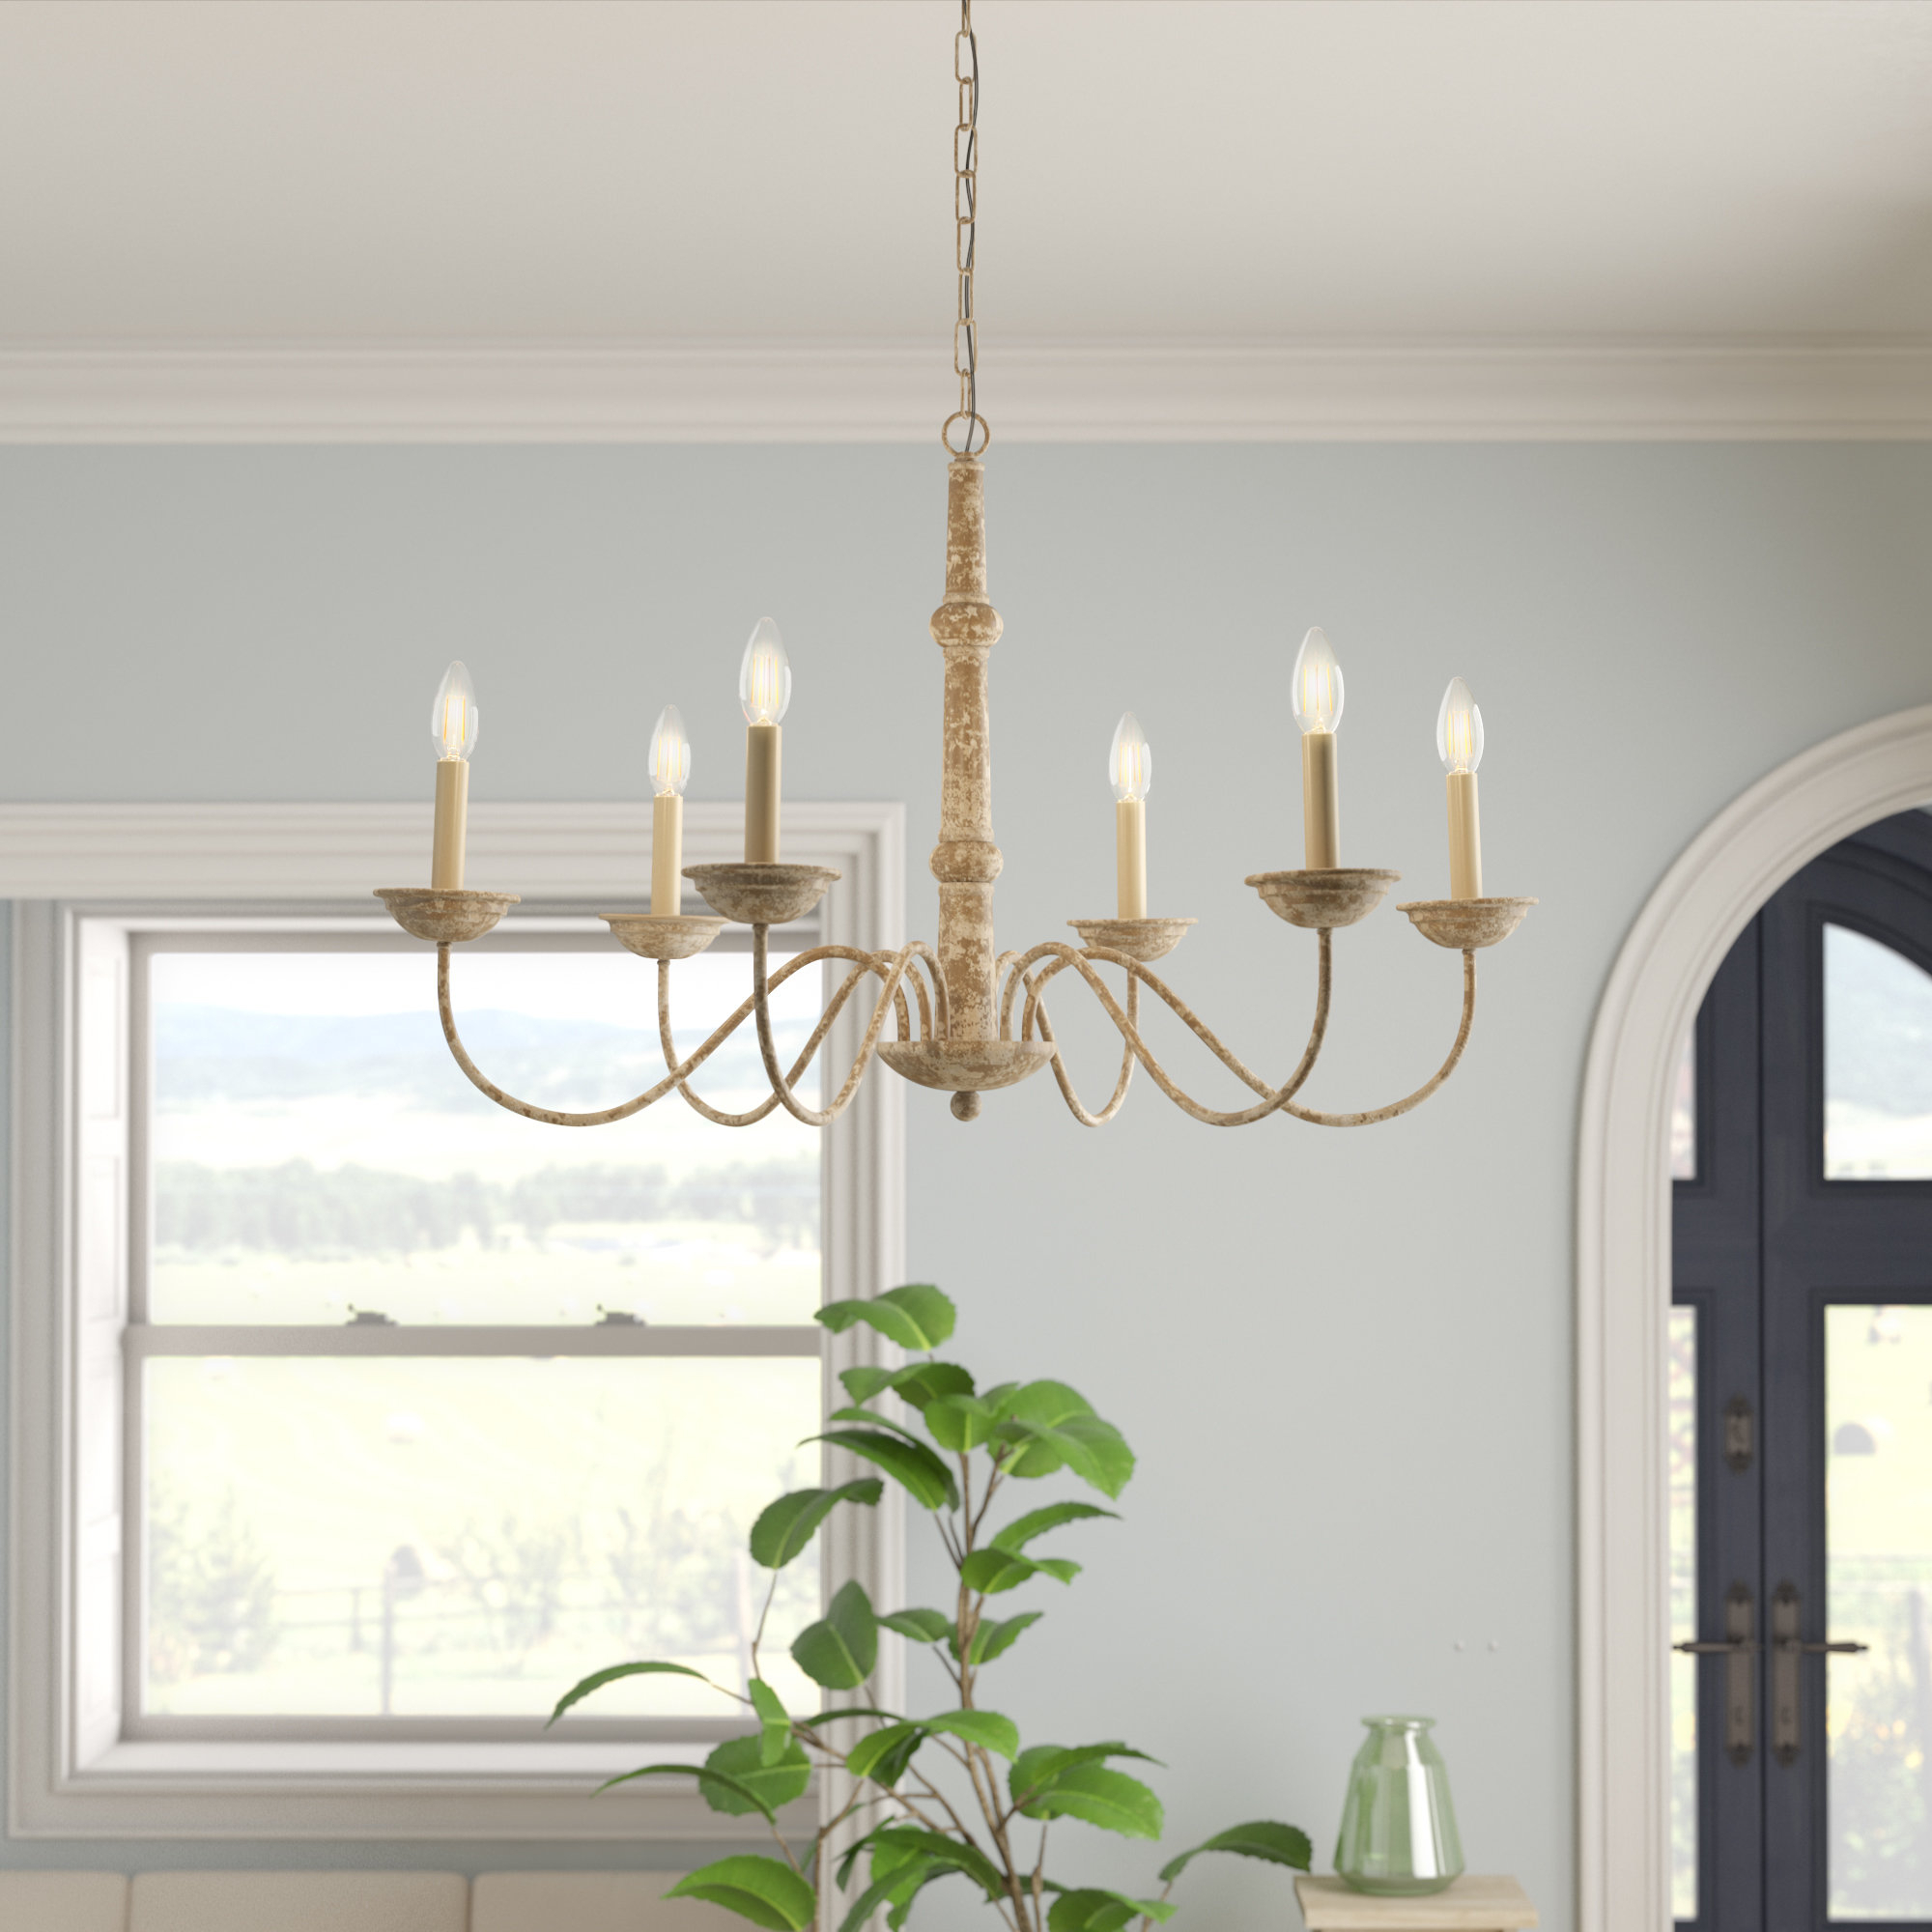 Preferred Gracie Oaks Seneca 6 Light Candle Style Chandelier & Reviews Intended For Armande Candle Style Chandeliers (View 18 of 25)